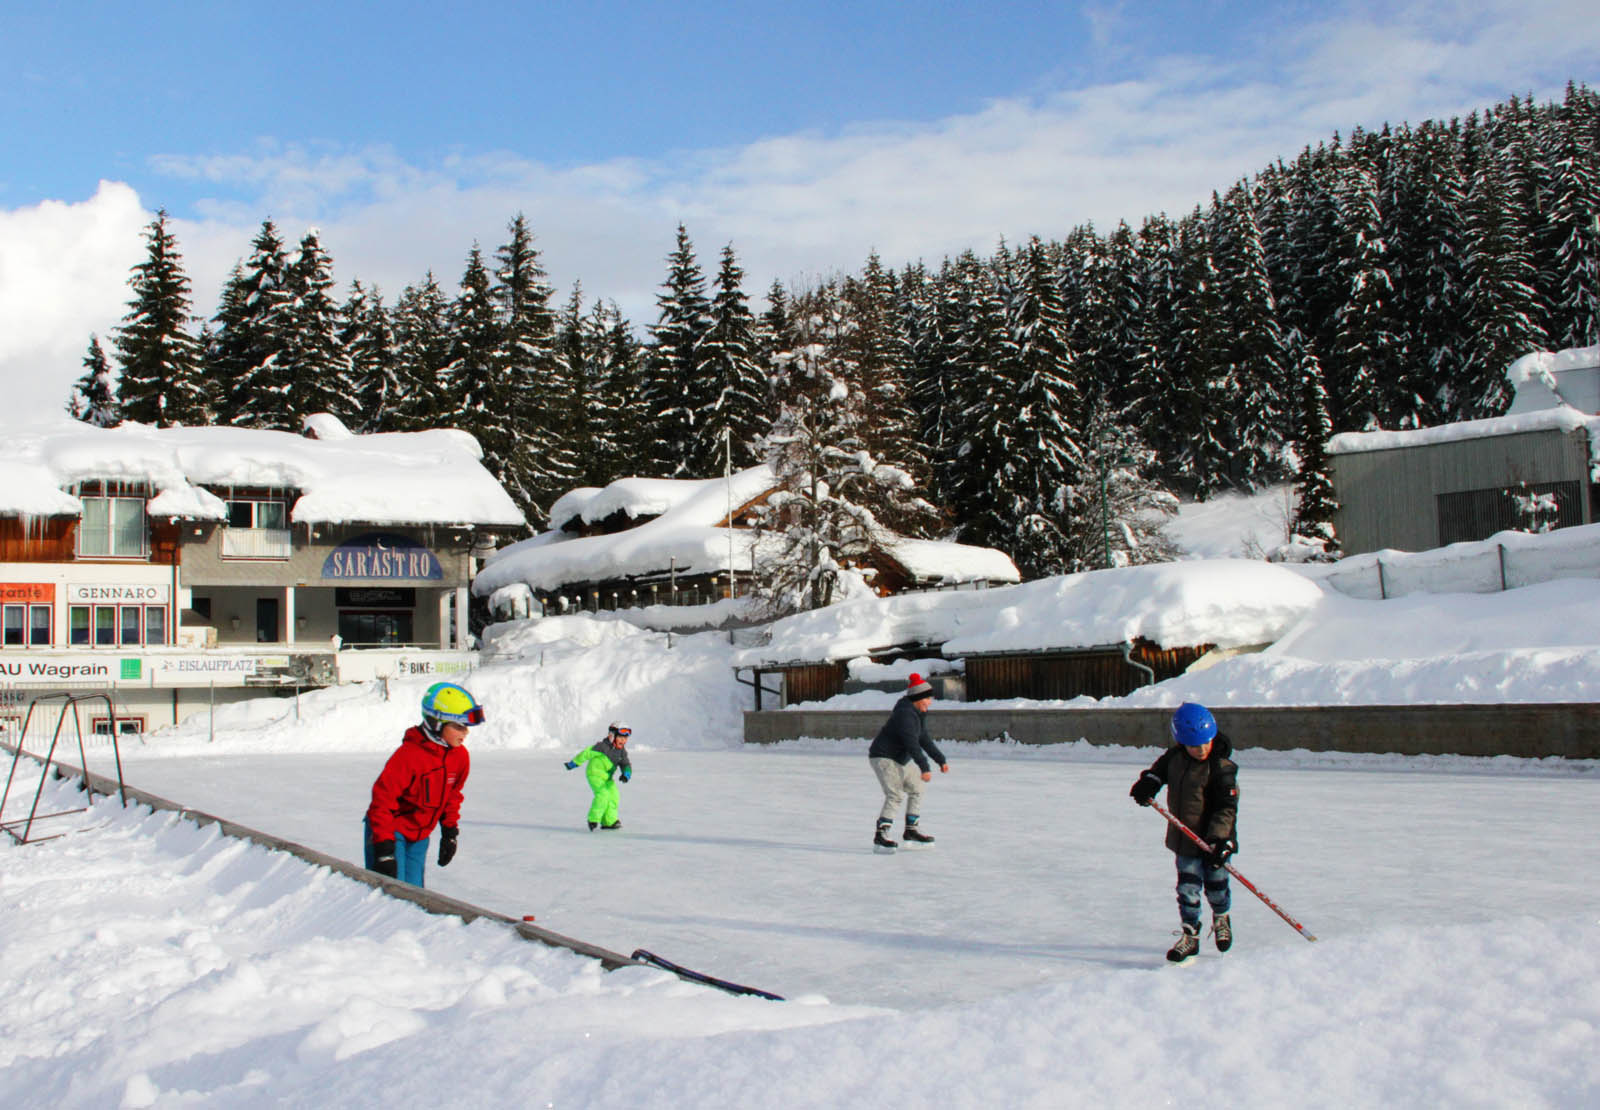 Winter activities in Salzburg besides skiing